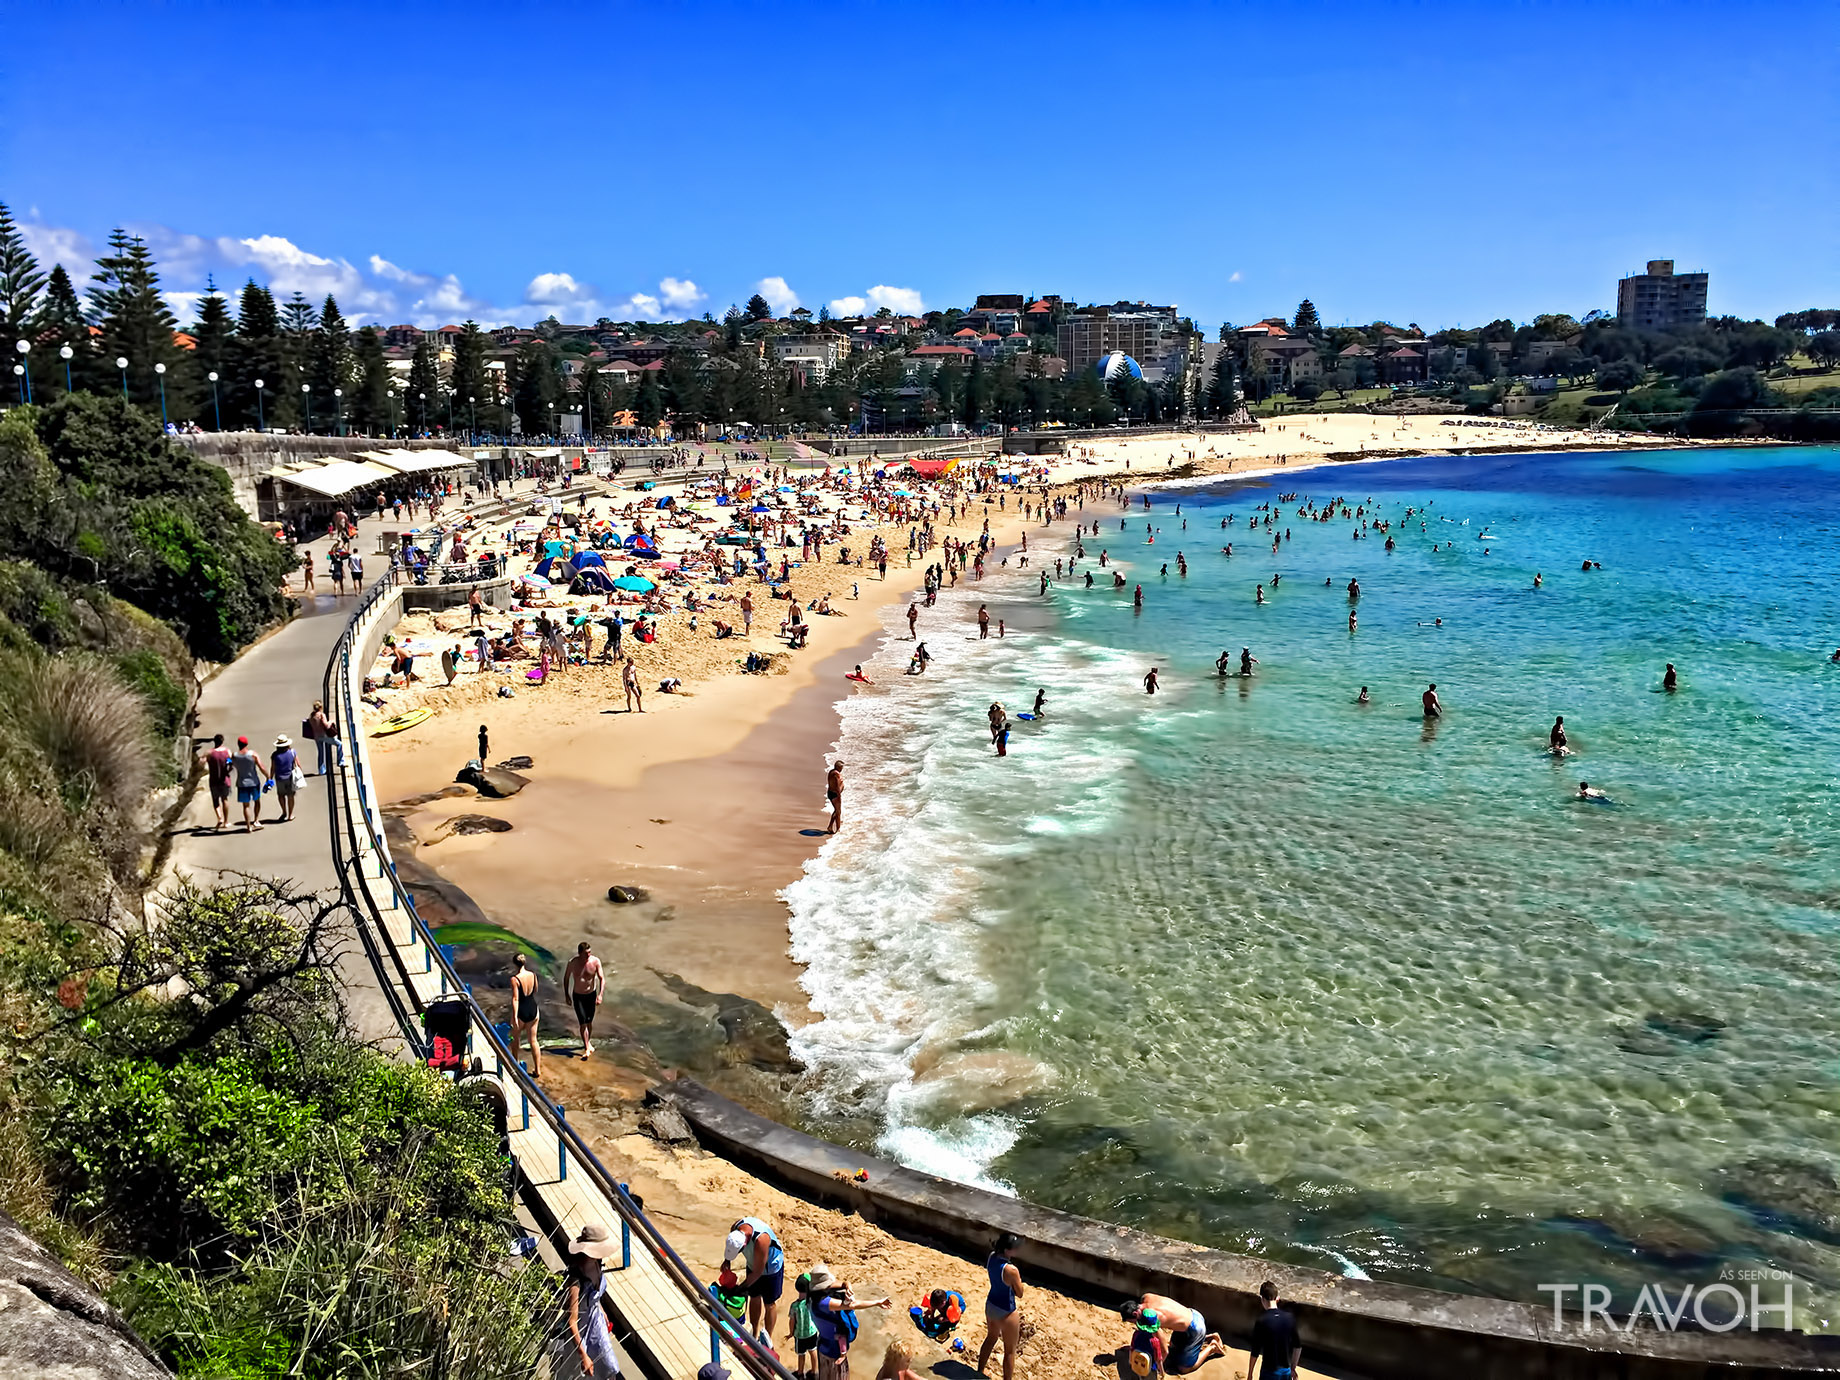 Coogee Beach - Exploring 10 of the Top Beaches in Sydney, Australia